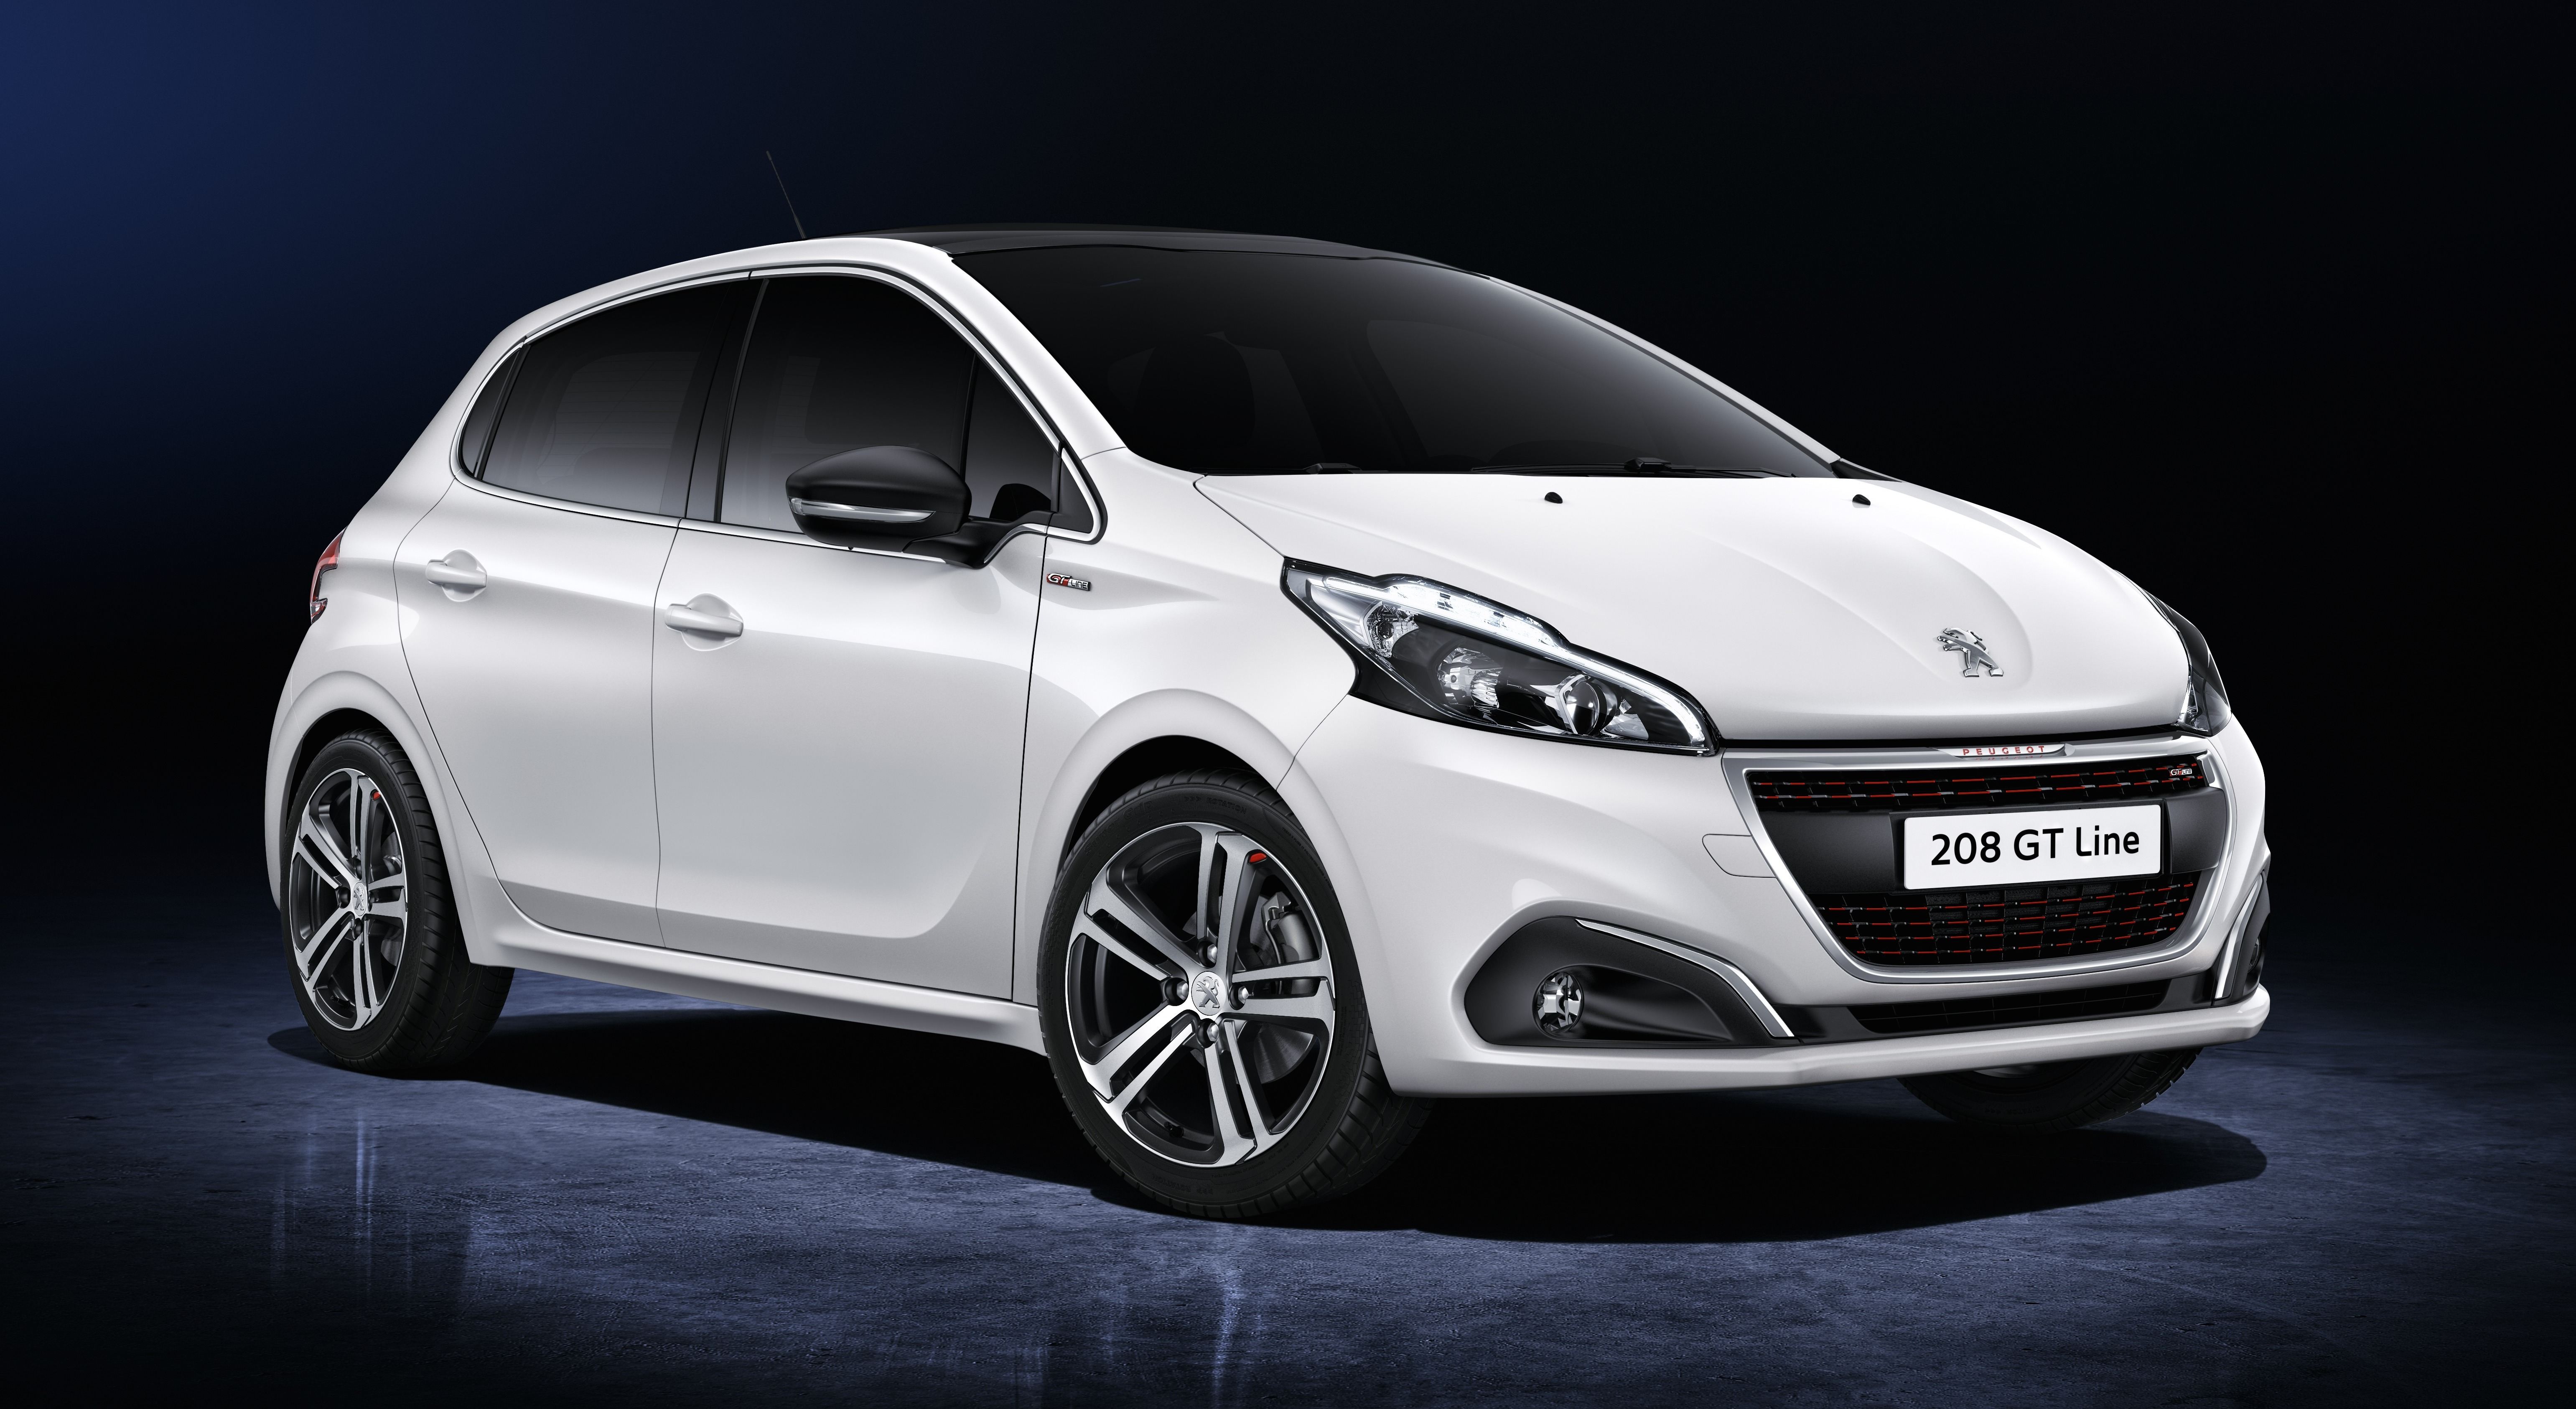 peugeot 208 facelift unveiled now with 6 speed auto. Black Bedroom Furniture Sets. Home Design Ideas